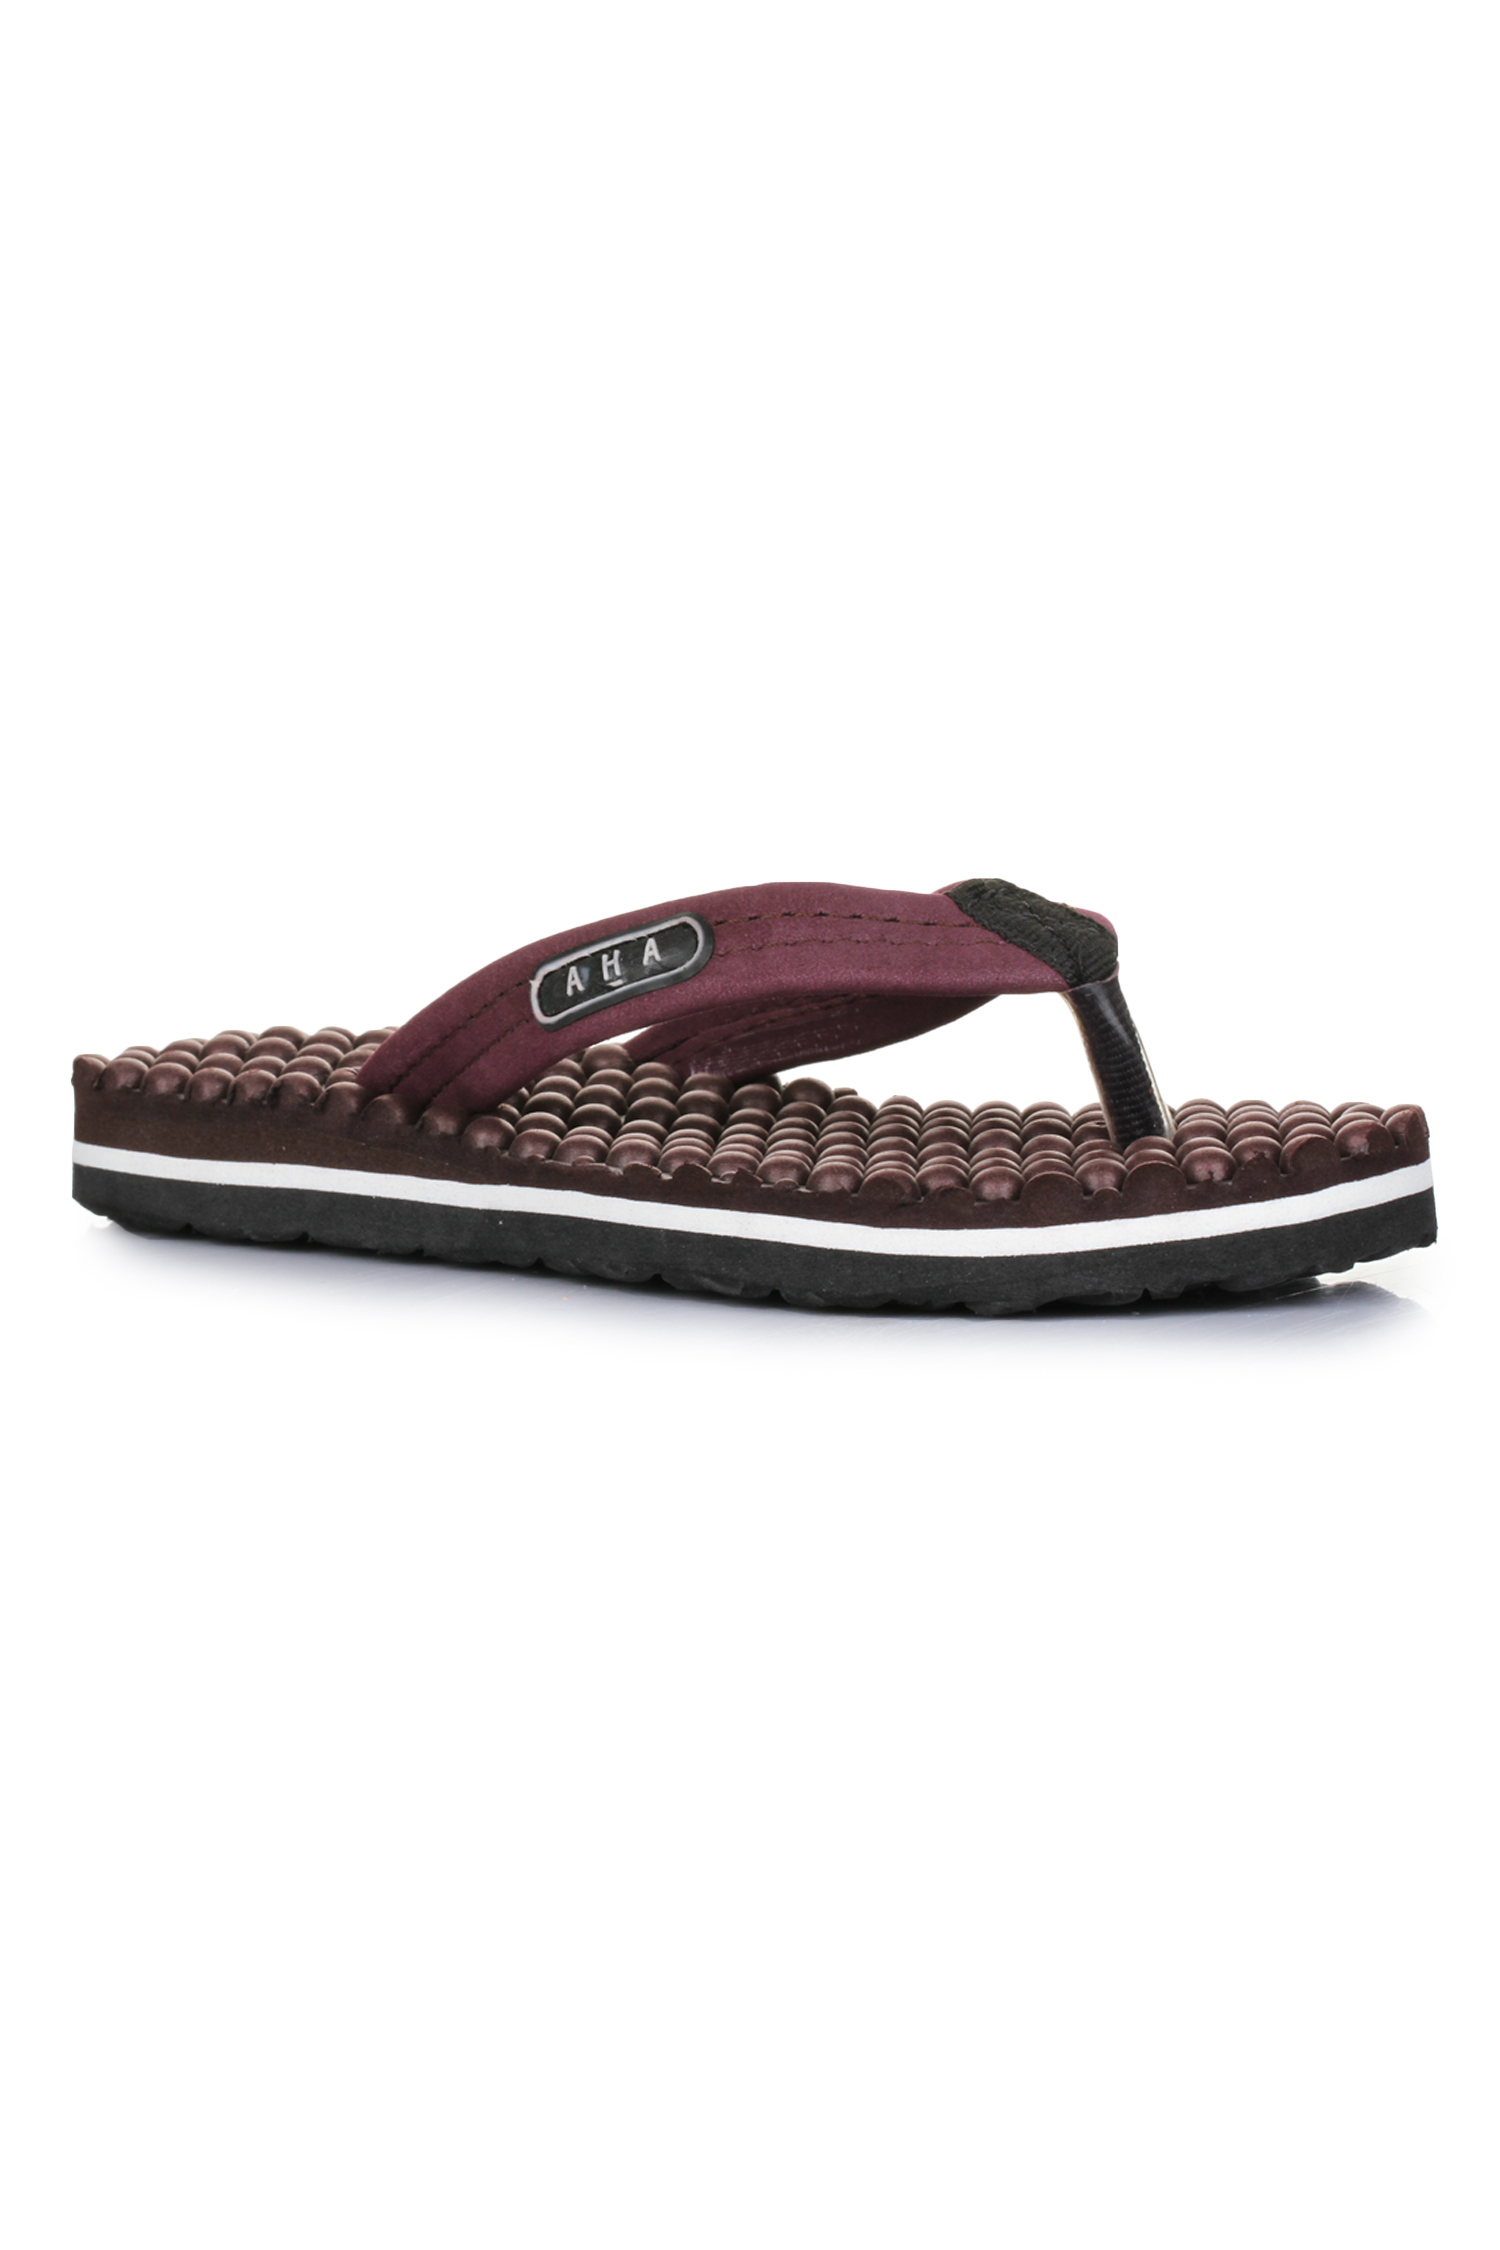 Liberty | Liberty A-HA Red Flip Flops ORTHO-7_Red For - Women